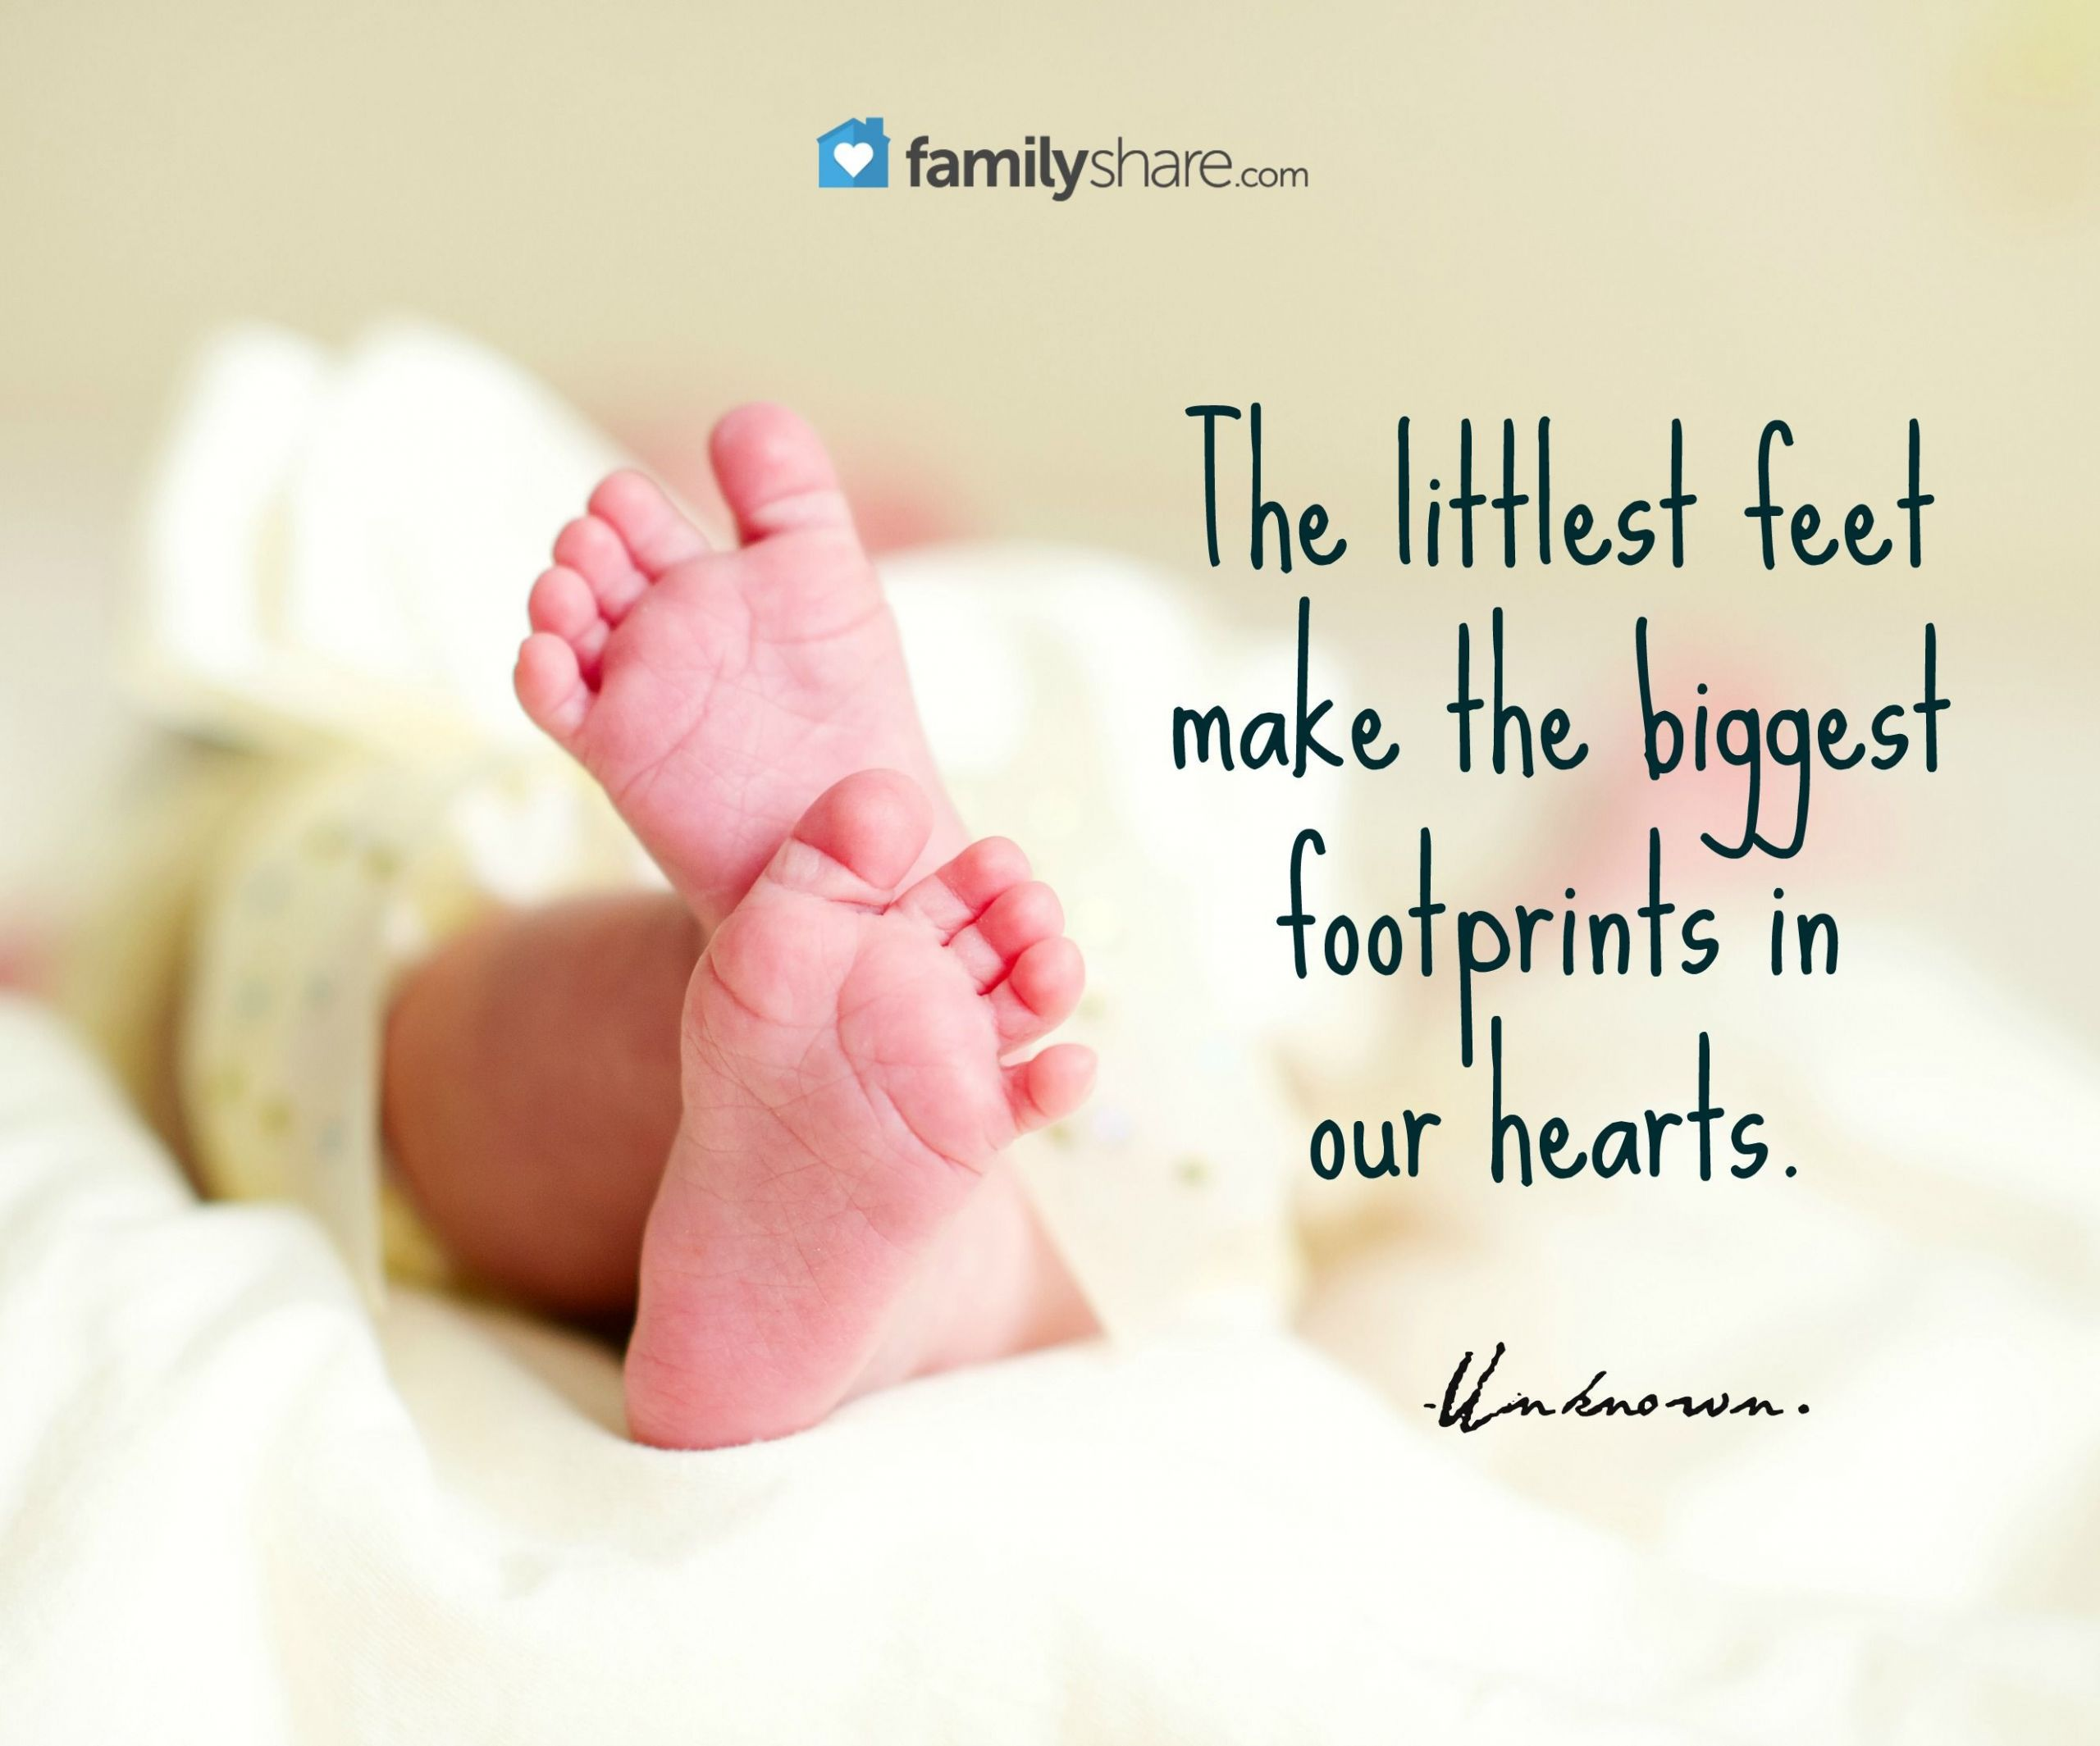 Baby Toes Quotes  The littlest feet make the biggest footprints in our